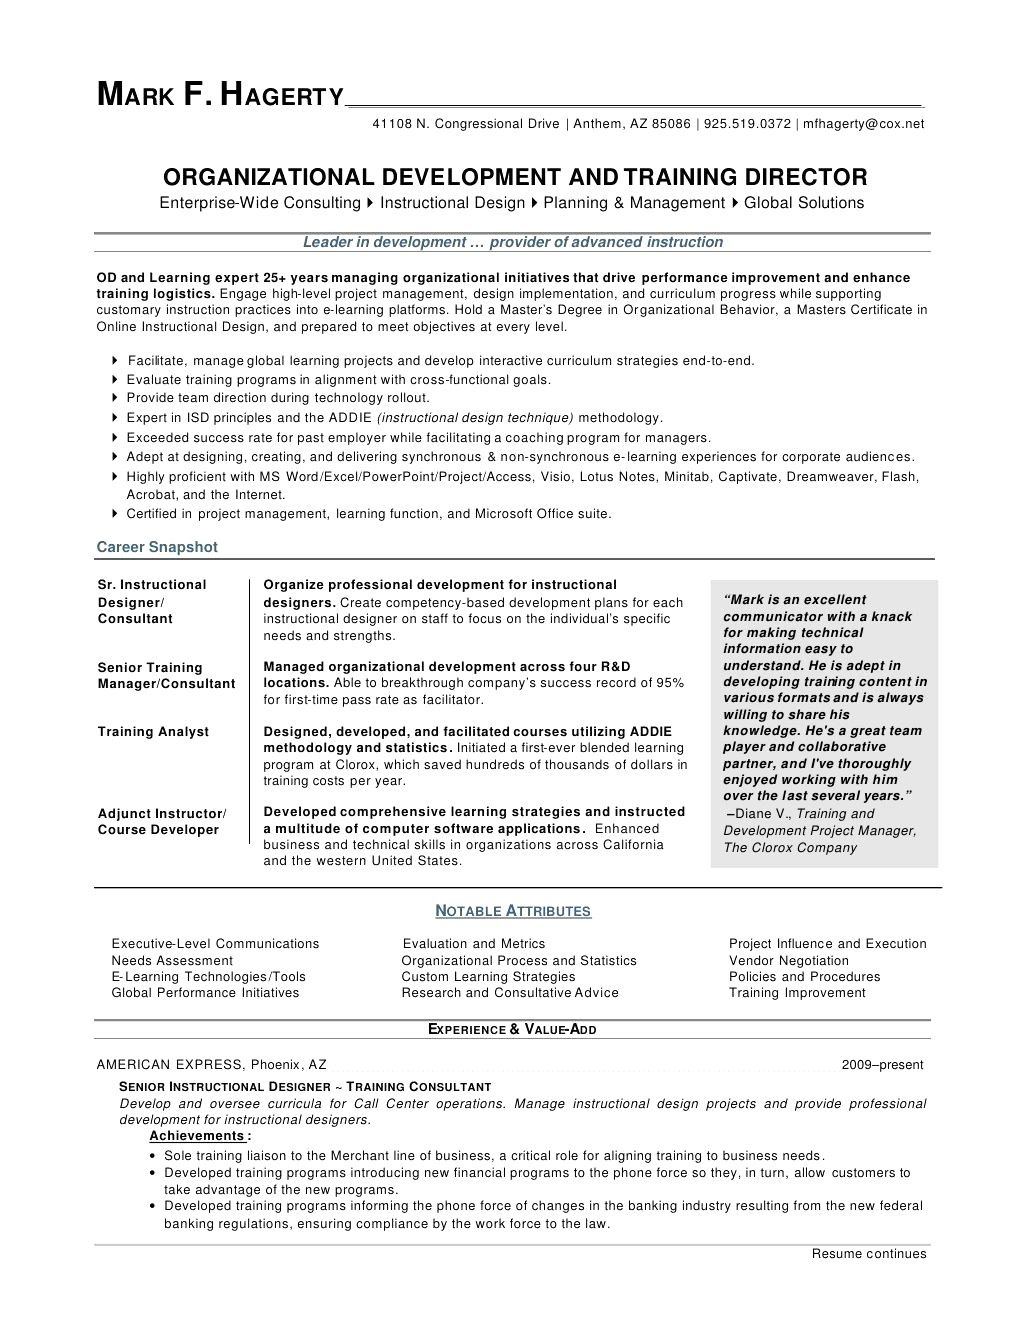 Resume How to Spell - Spelling Curriculum Vitae – Resume Spelling New Template Great